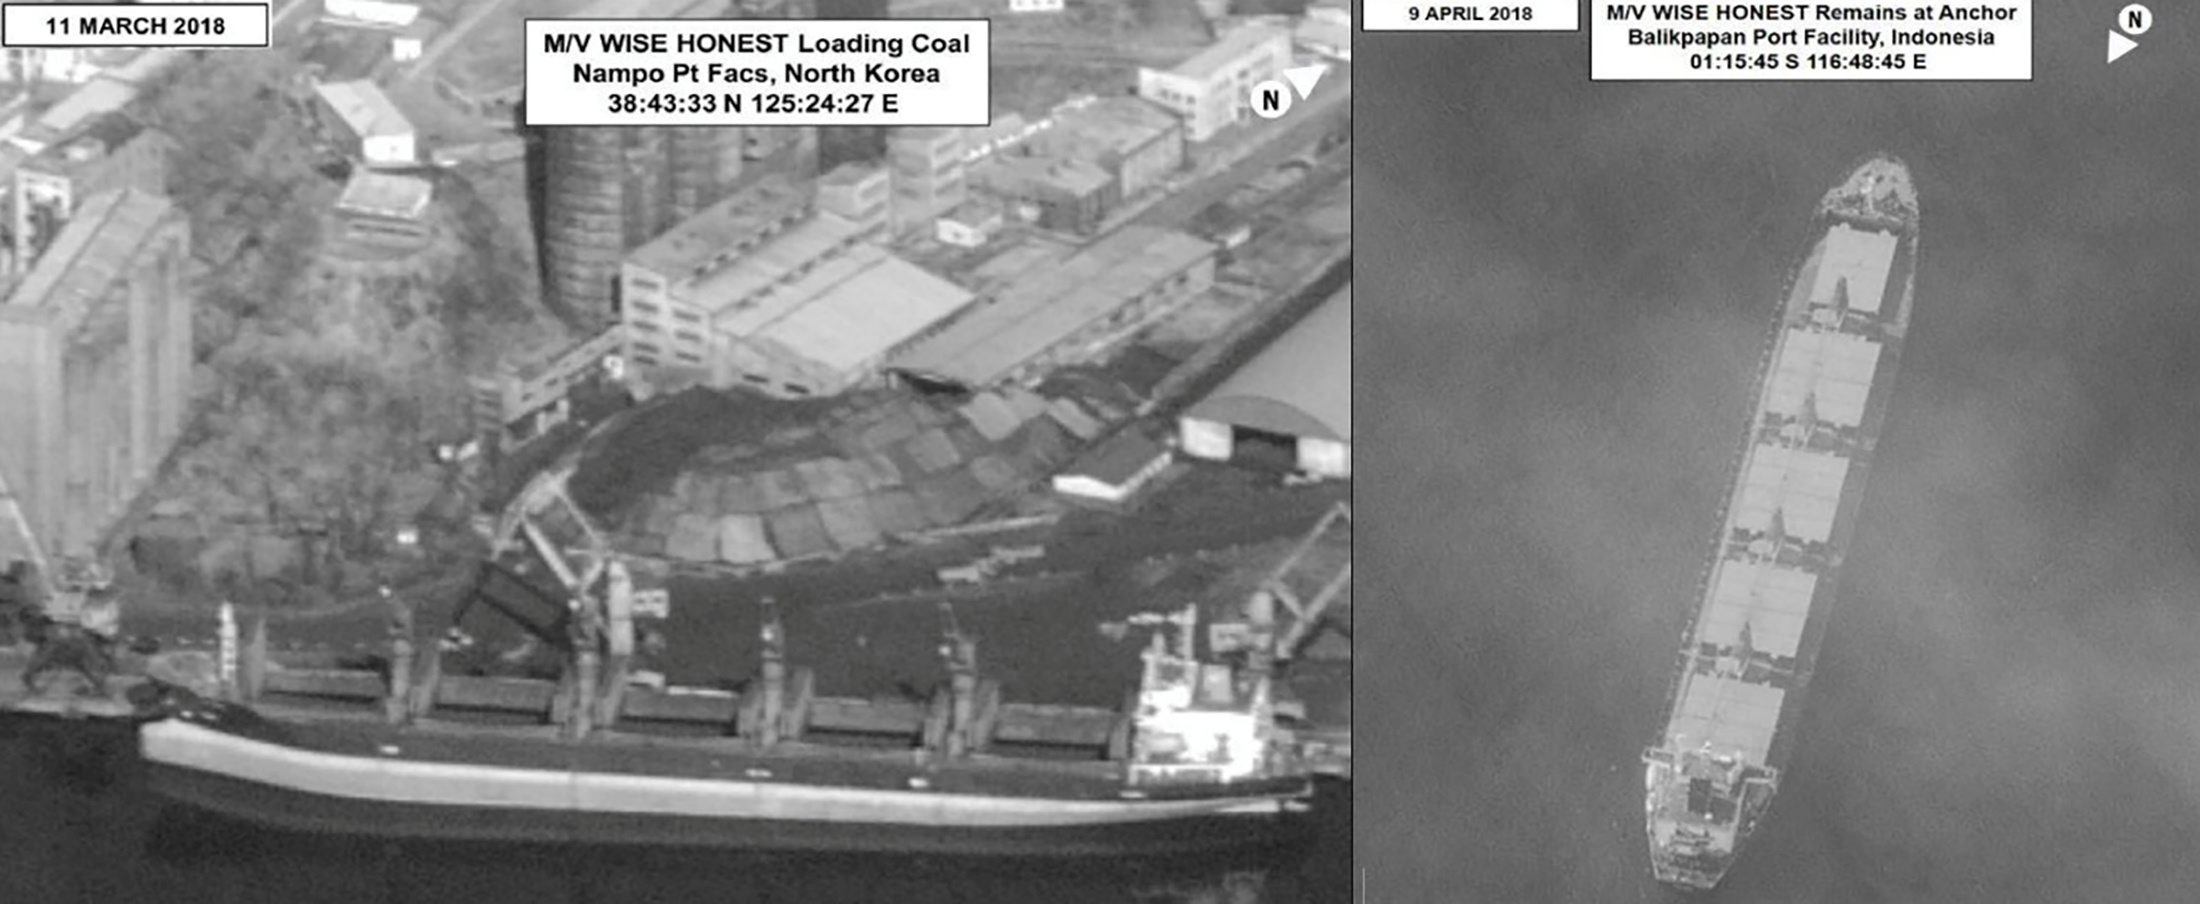 Surveillance images provided in a U.N. Security Council North Korea sanctions report distributed March 5, 2019 show what is described as the North Korean vessel Wise Honest being loaded with coal in Nampo, North Korea March 11, 2018 (L) and later at Balikpapan Port Facility, Indonesia April 9, 2018. United Nations Security Council/Handout via REUTERS. ATTENTION EDITORS - THIS IMAGE WAS PROVIDED BY A THIRD PARTY.